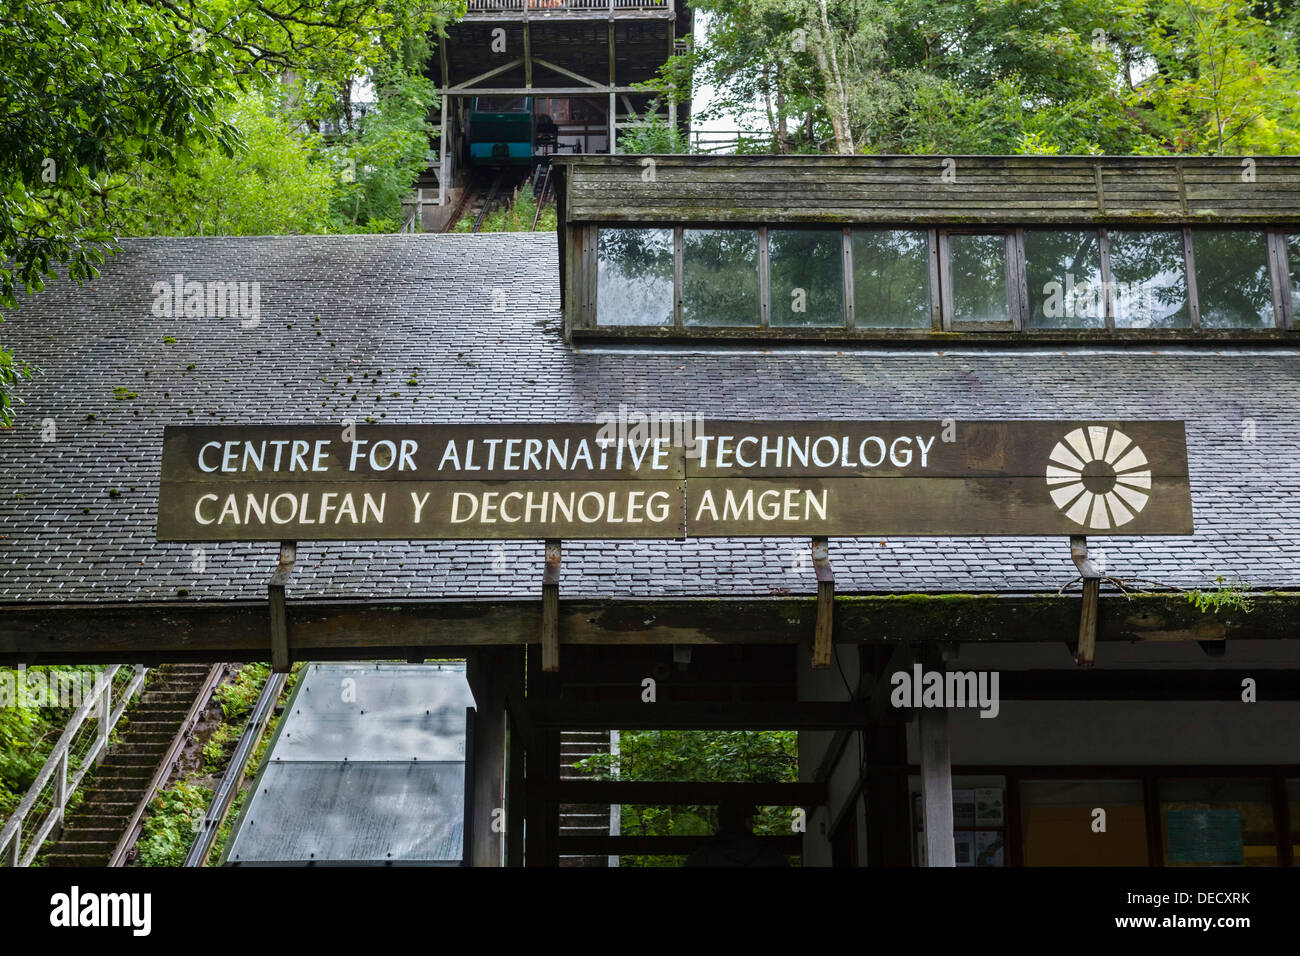 Centre for Alternative Technology entrance with water balanced funicular railway to the left, near Machynlleth, Powys, Wales, UK - Stock Image